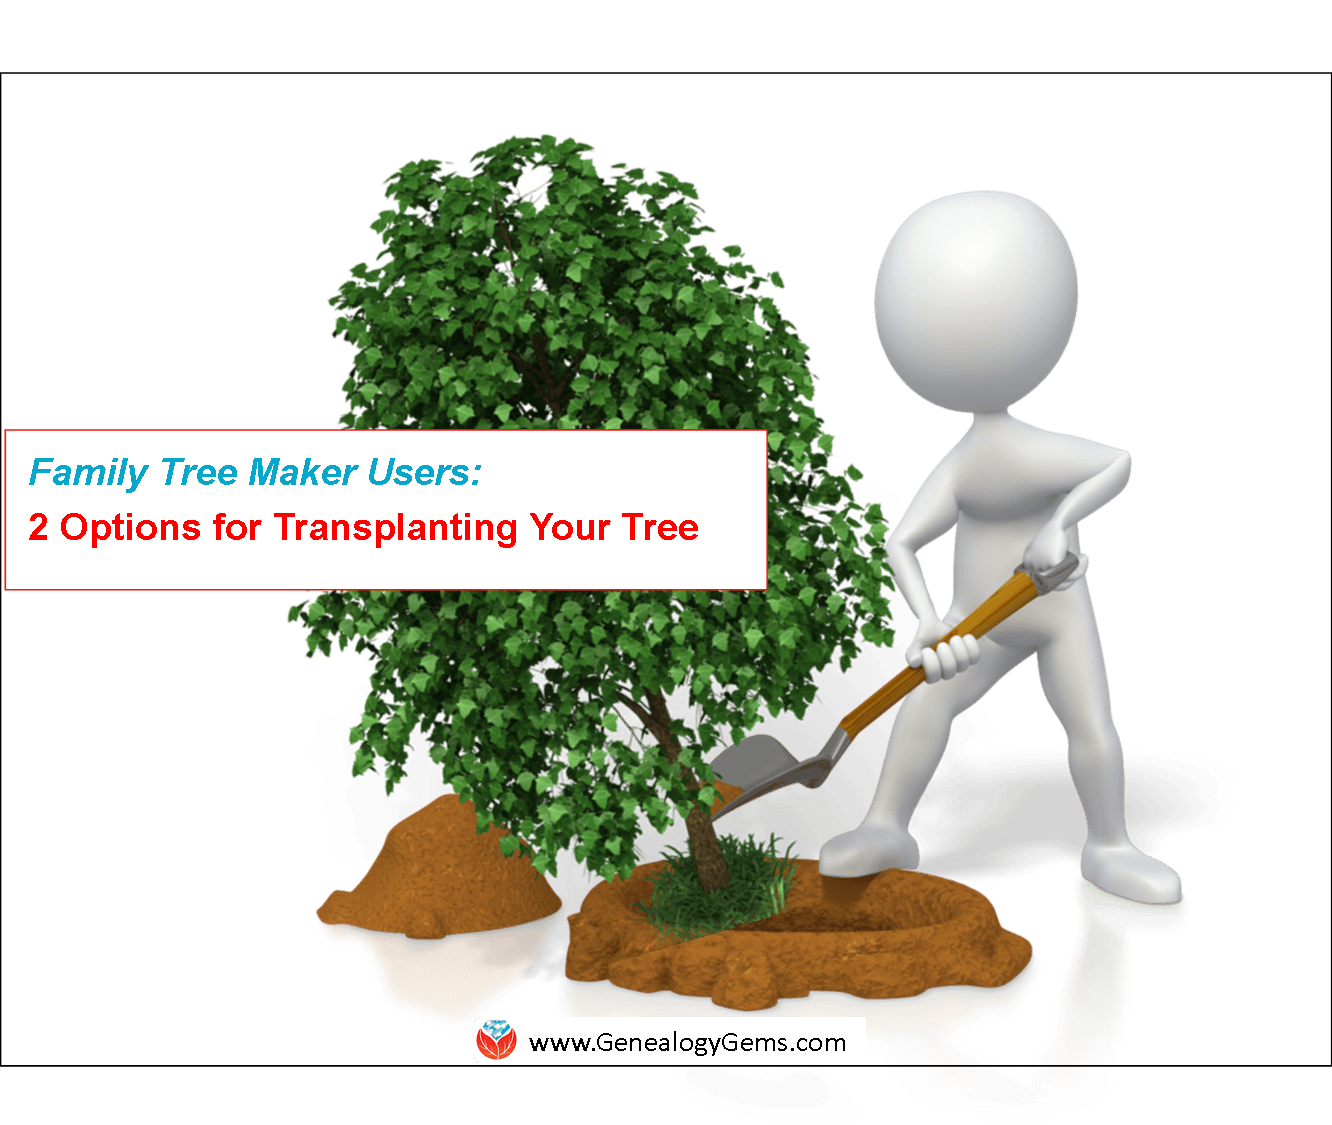 Family Tree Maker Alternatives: Great Offers, and What I Do With My Tree